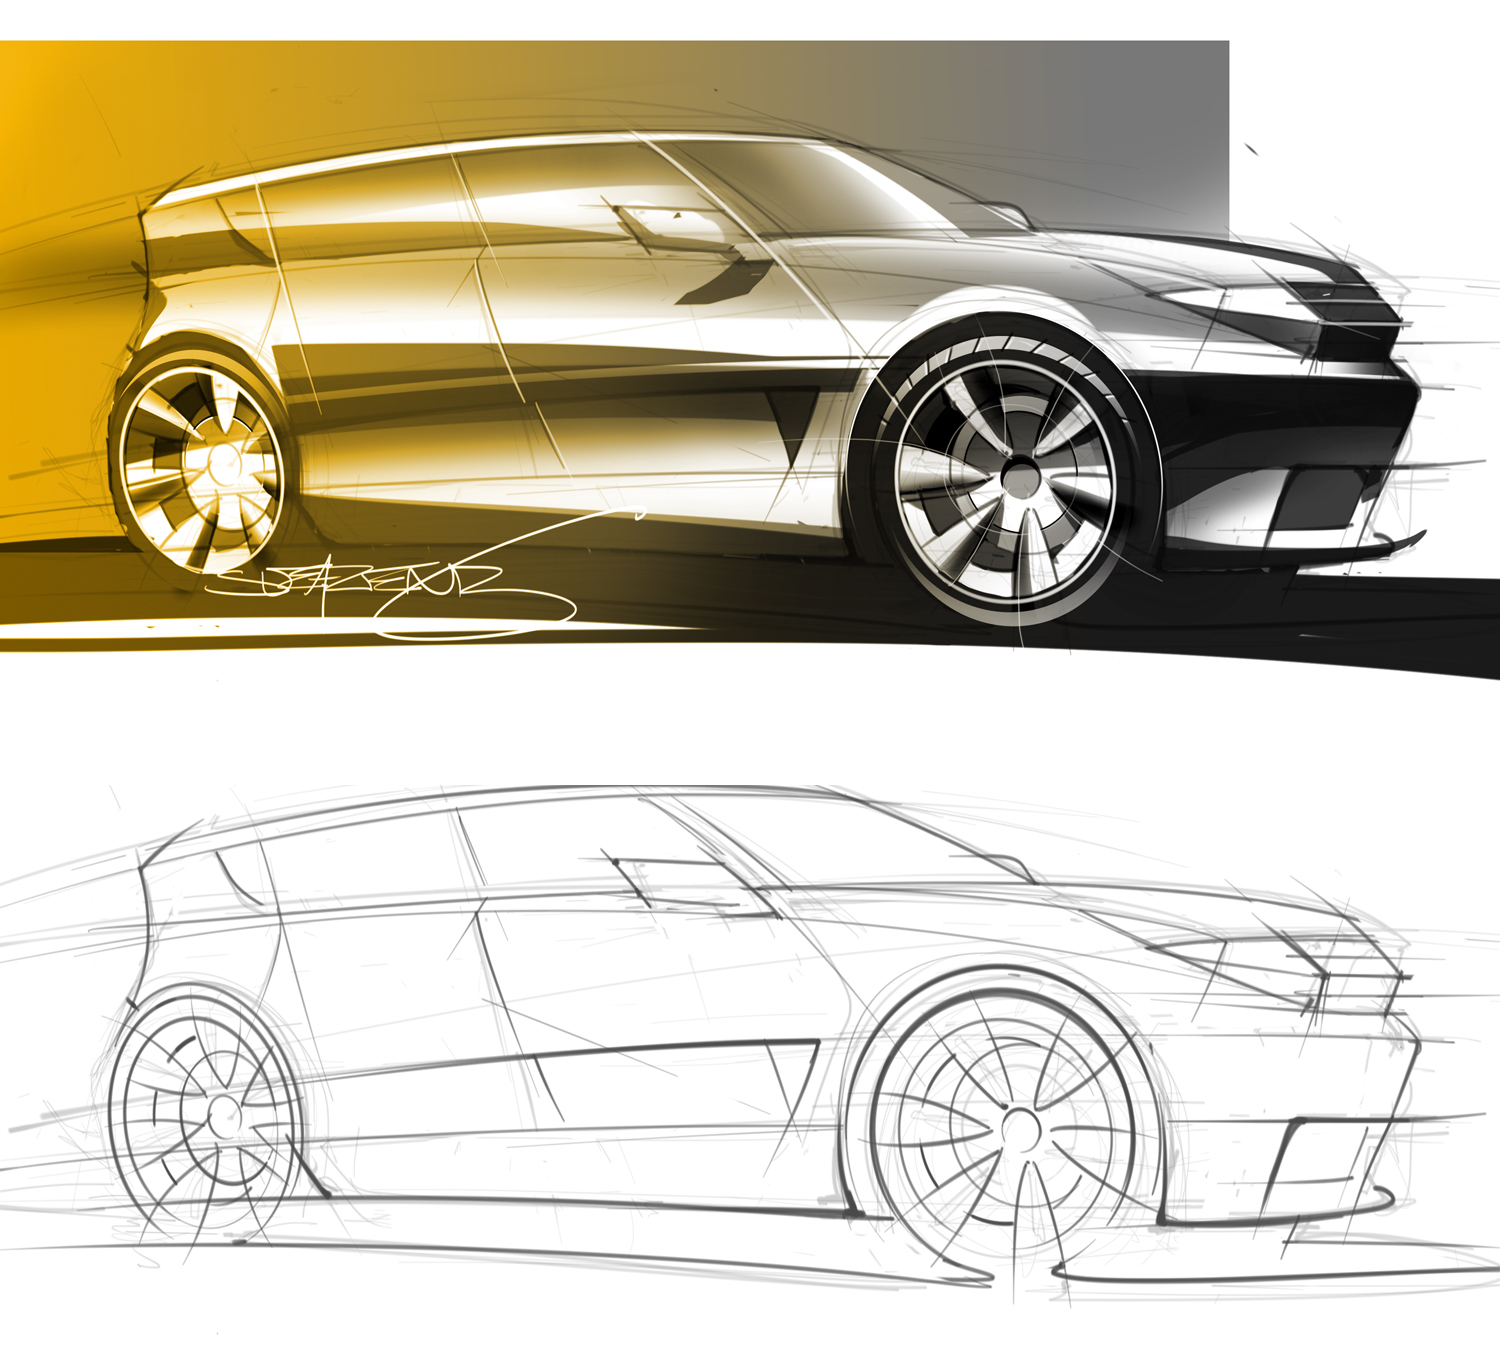 Sketch and rendering of a crossover-type SUV